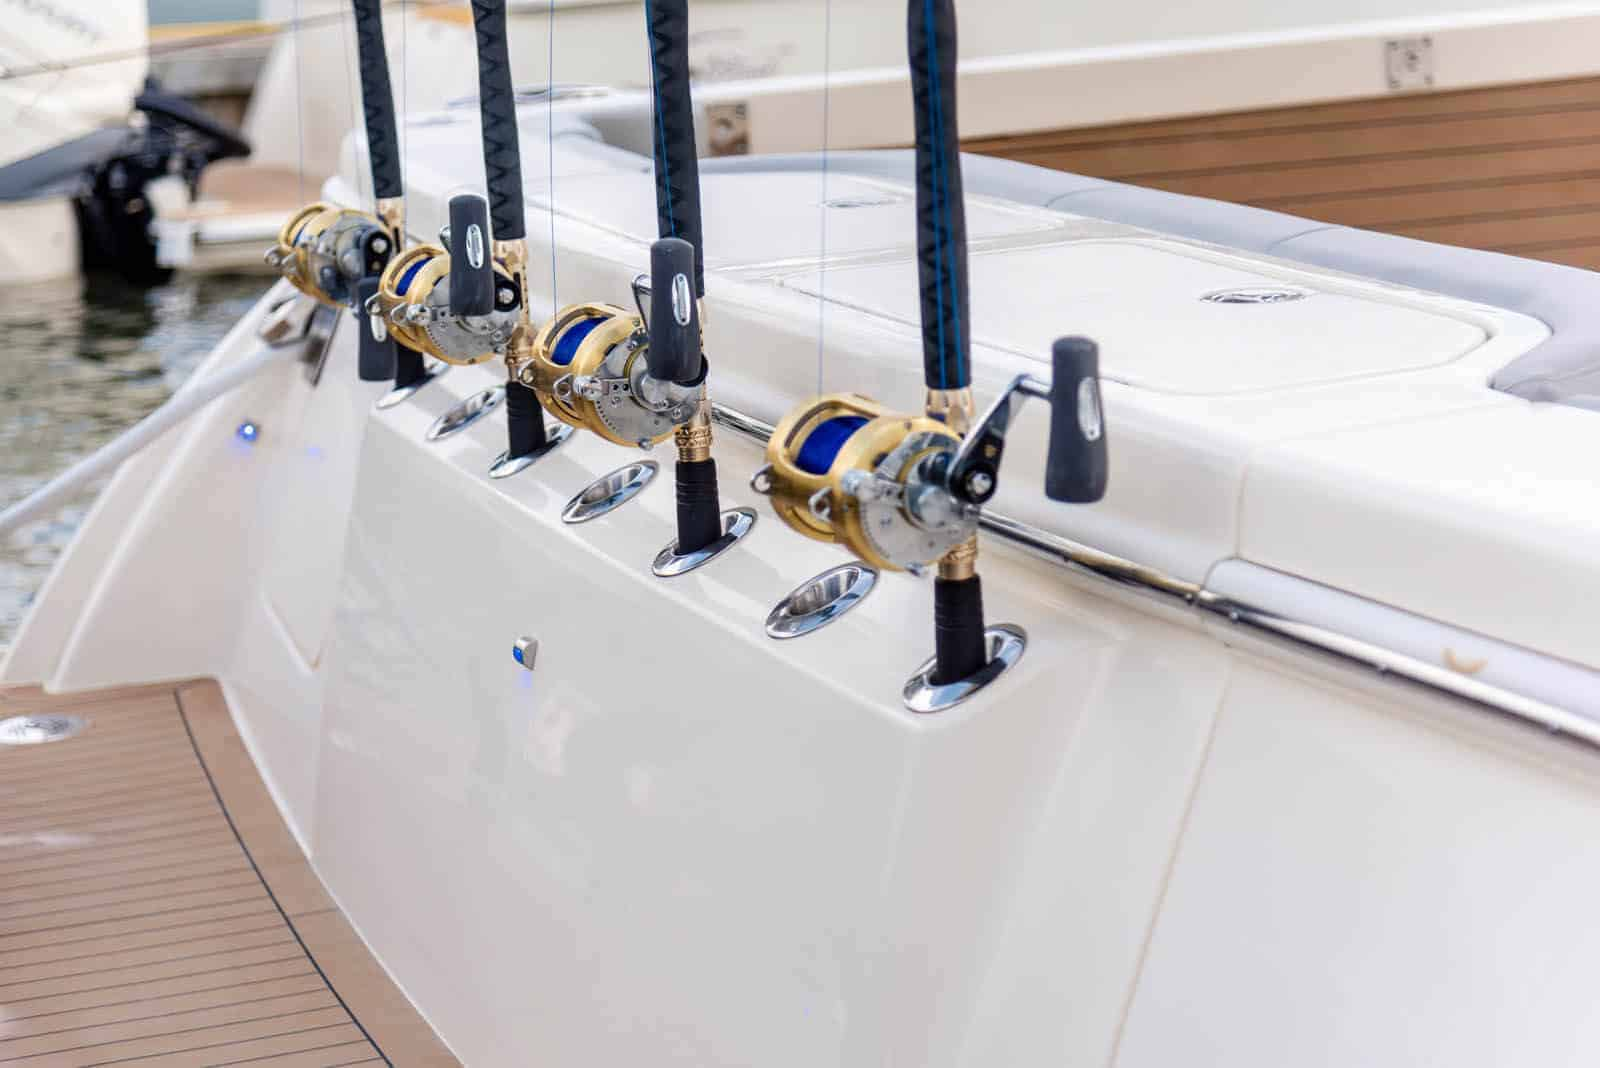 530LXF rods in transom rod holders